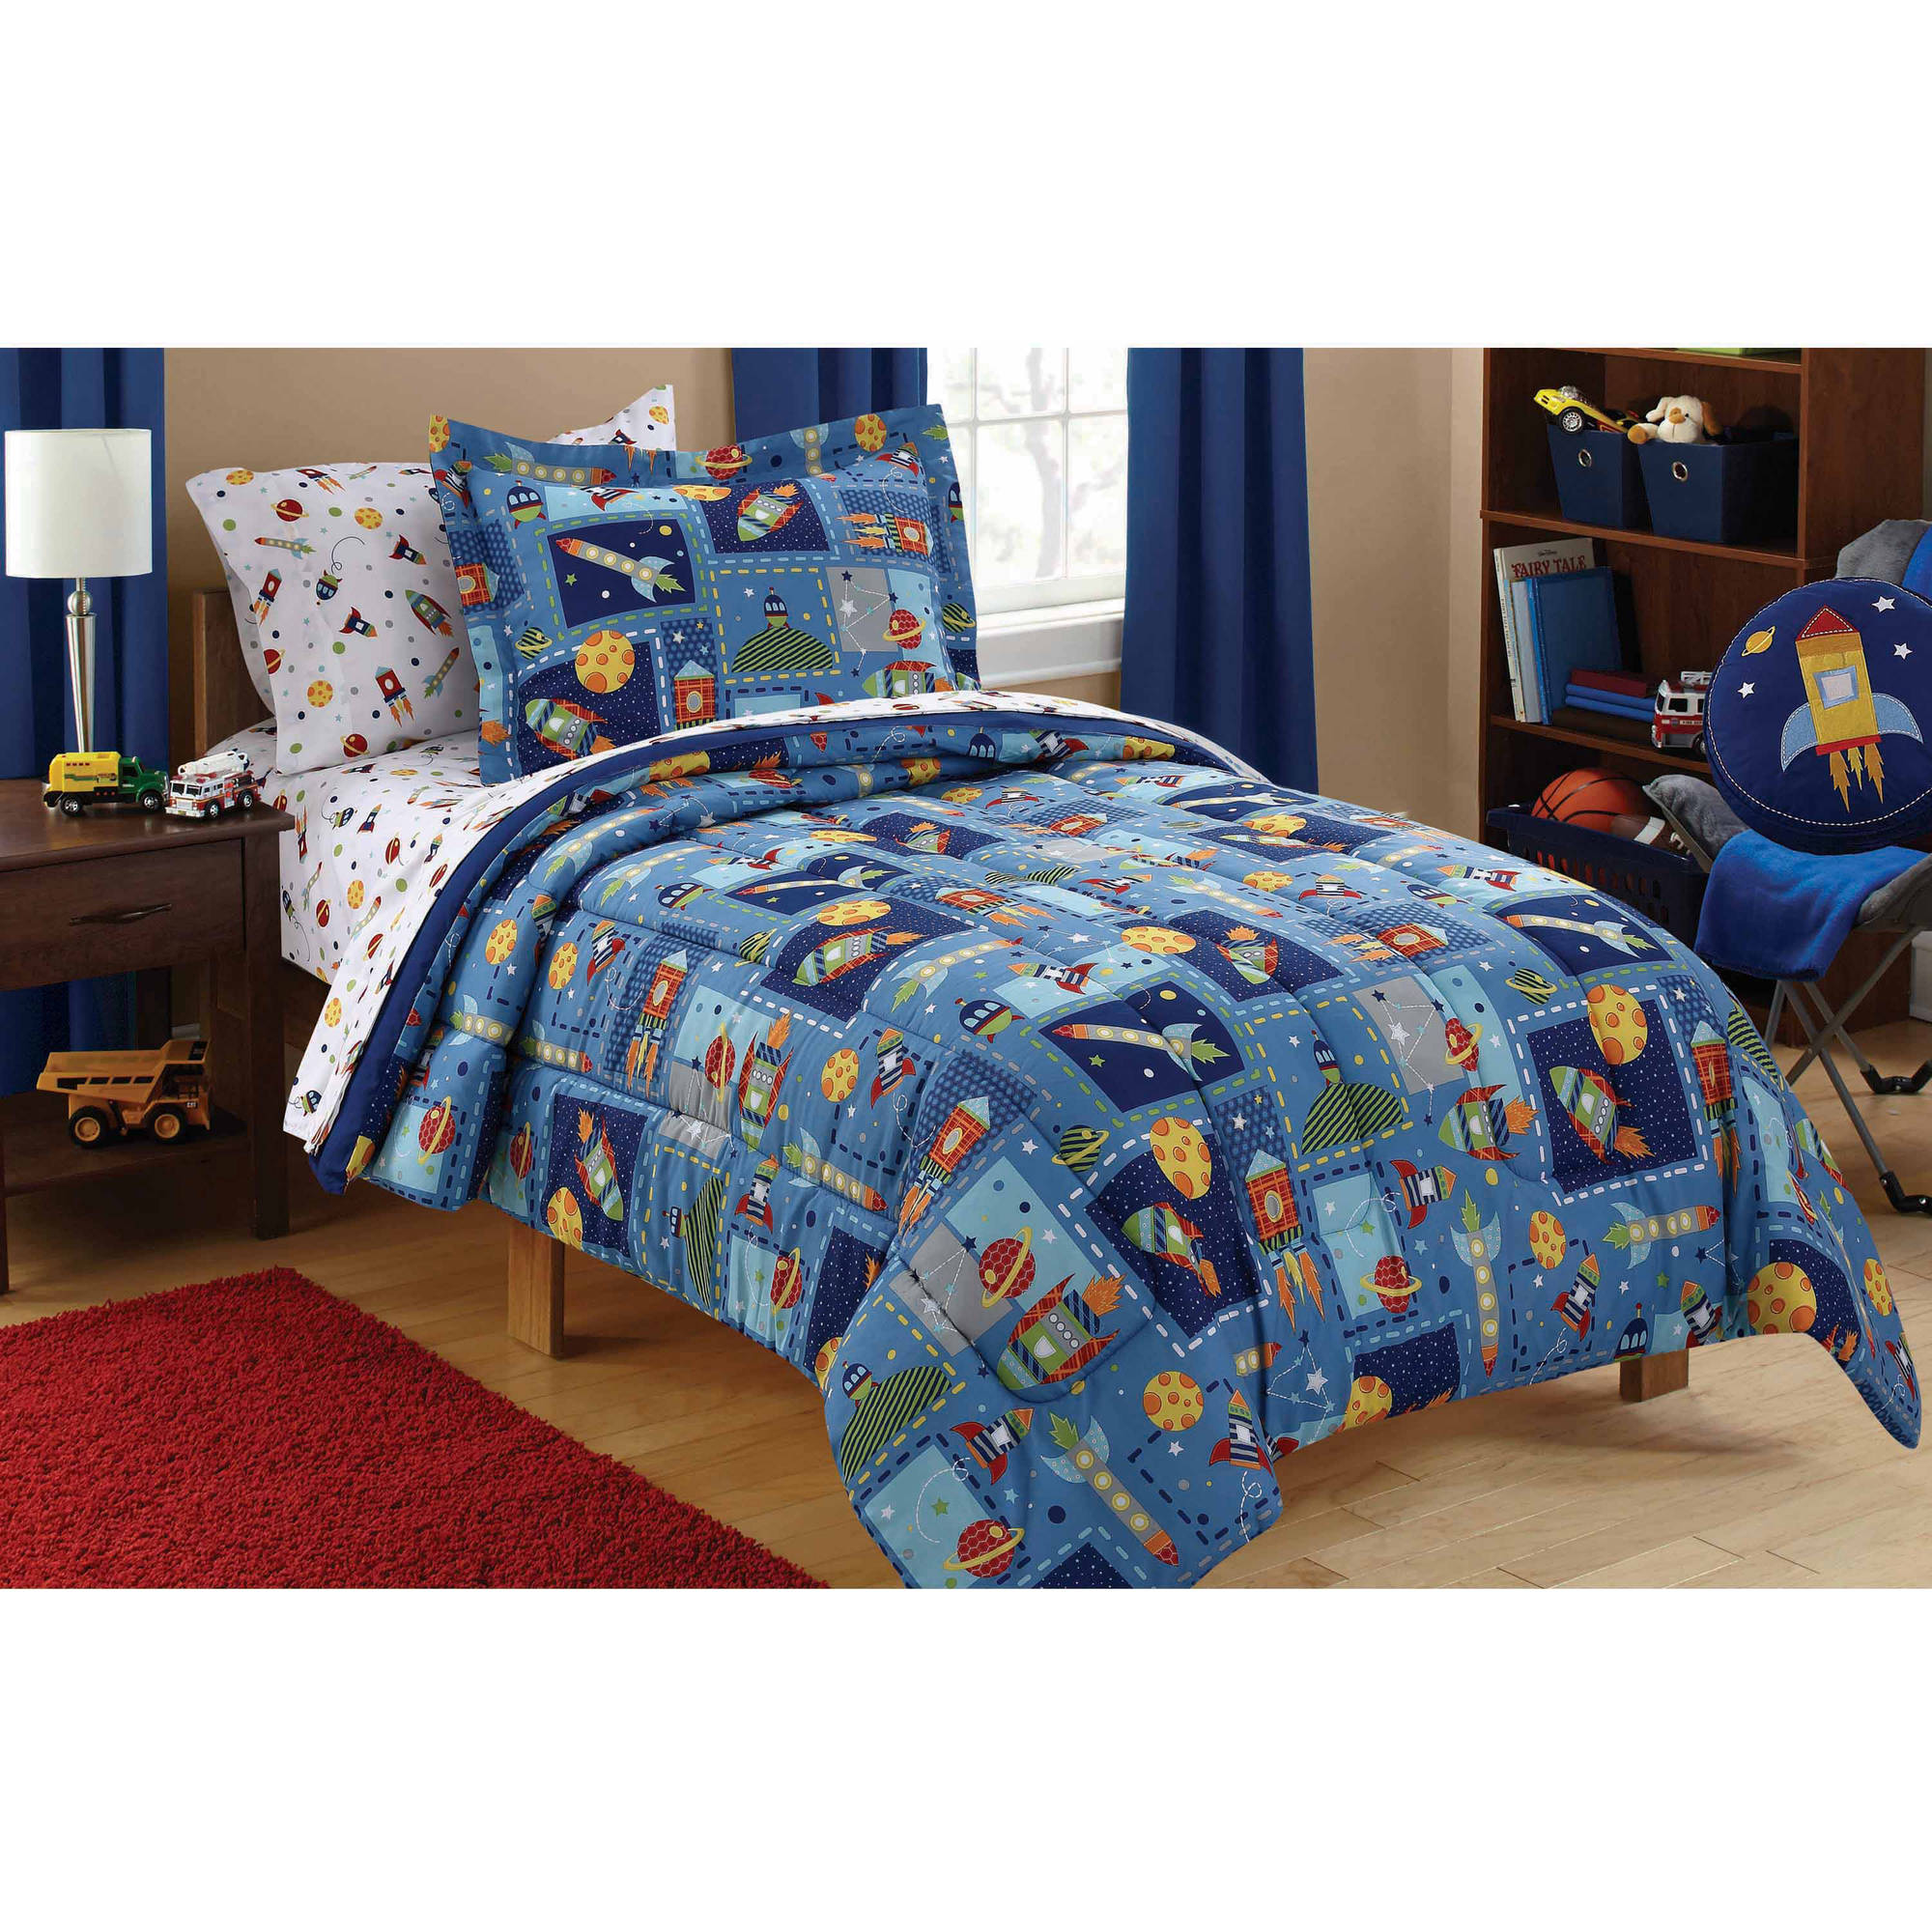 Emoji Pals Bed-In-A-Bag Bedding Set - Walmart.com